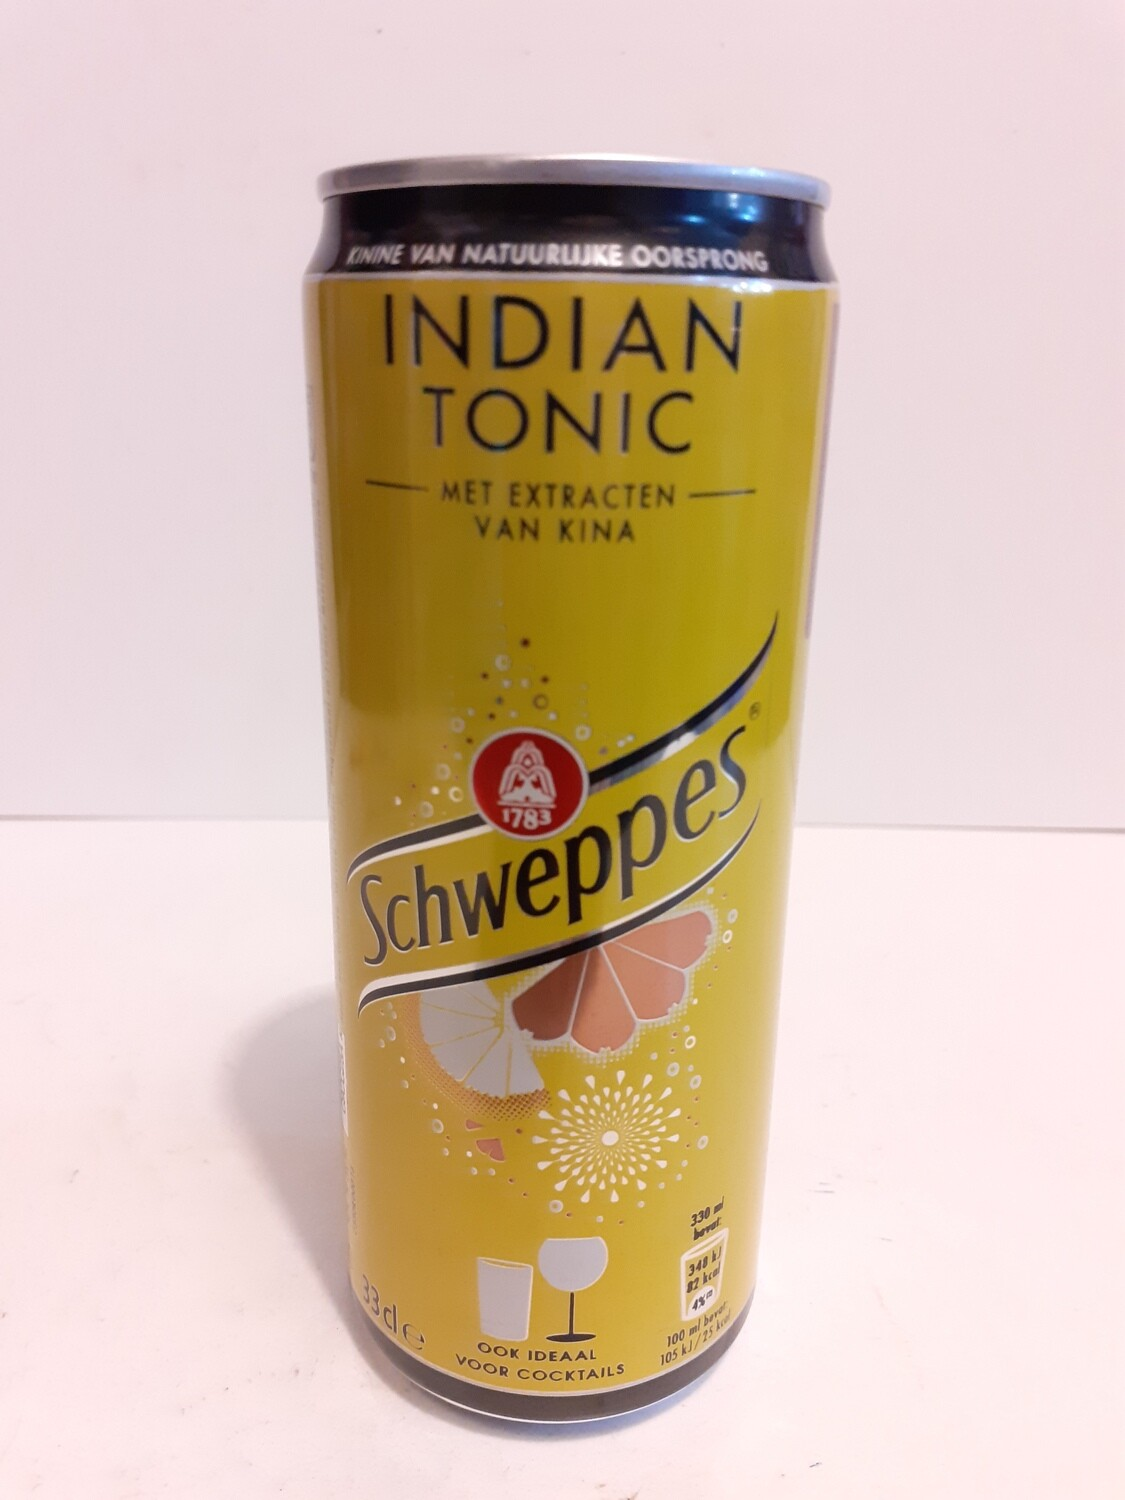 Schweppes IDIAN TONIC 33 cl